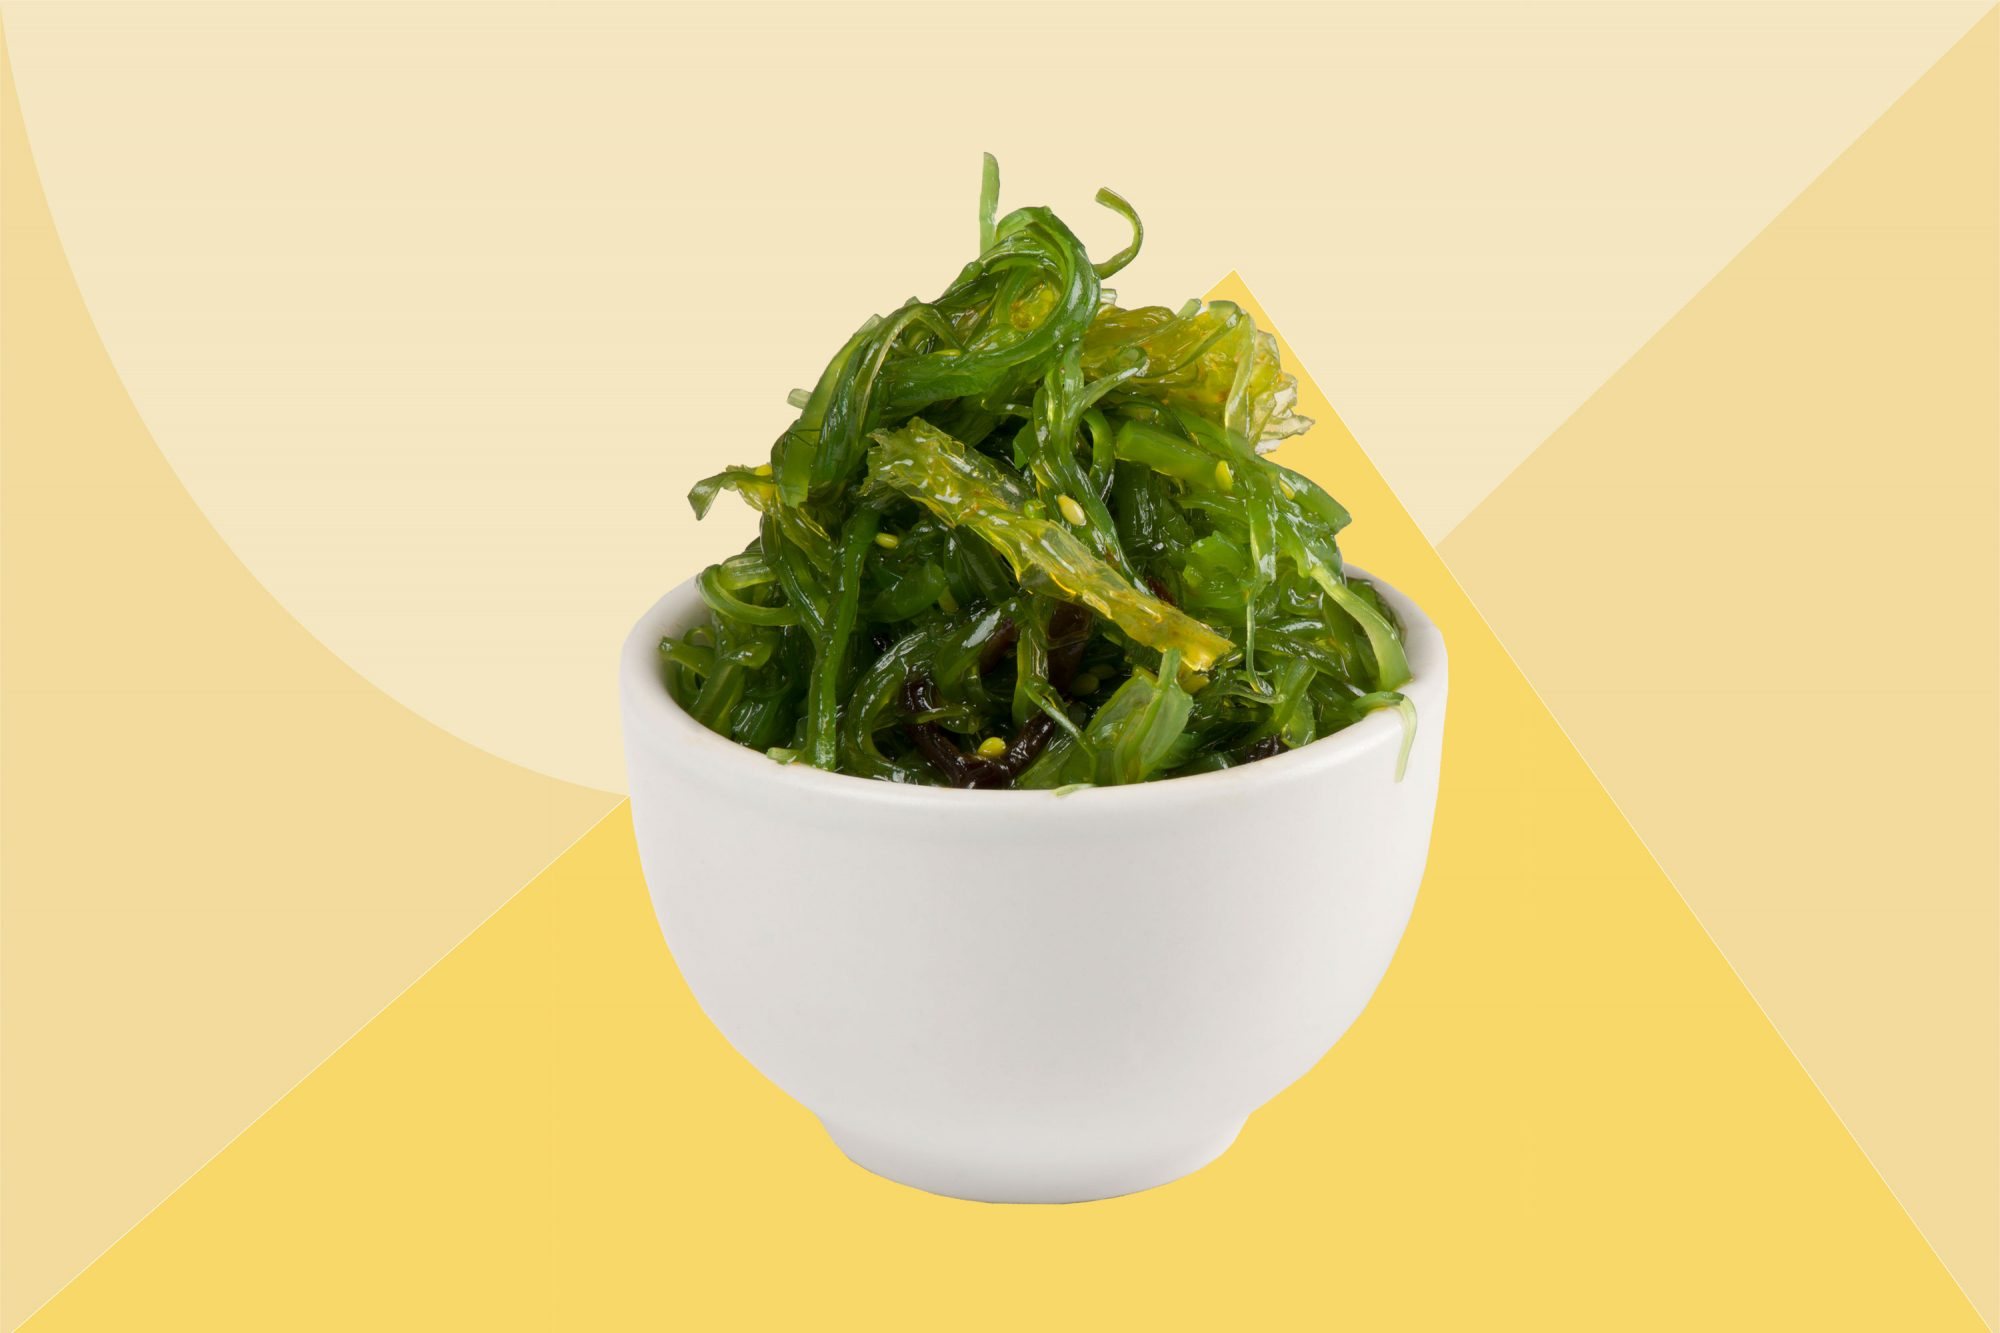 Seaweed Benefits: Unexpected Ways to Eat More Seaweed—Plus All the Reasons You'd Want To